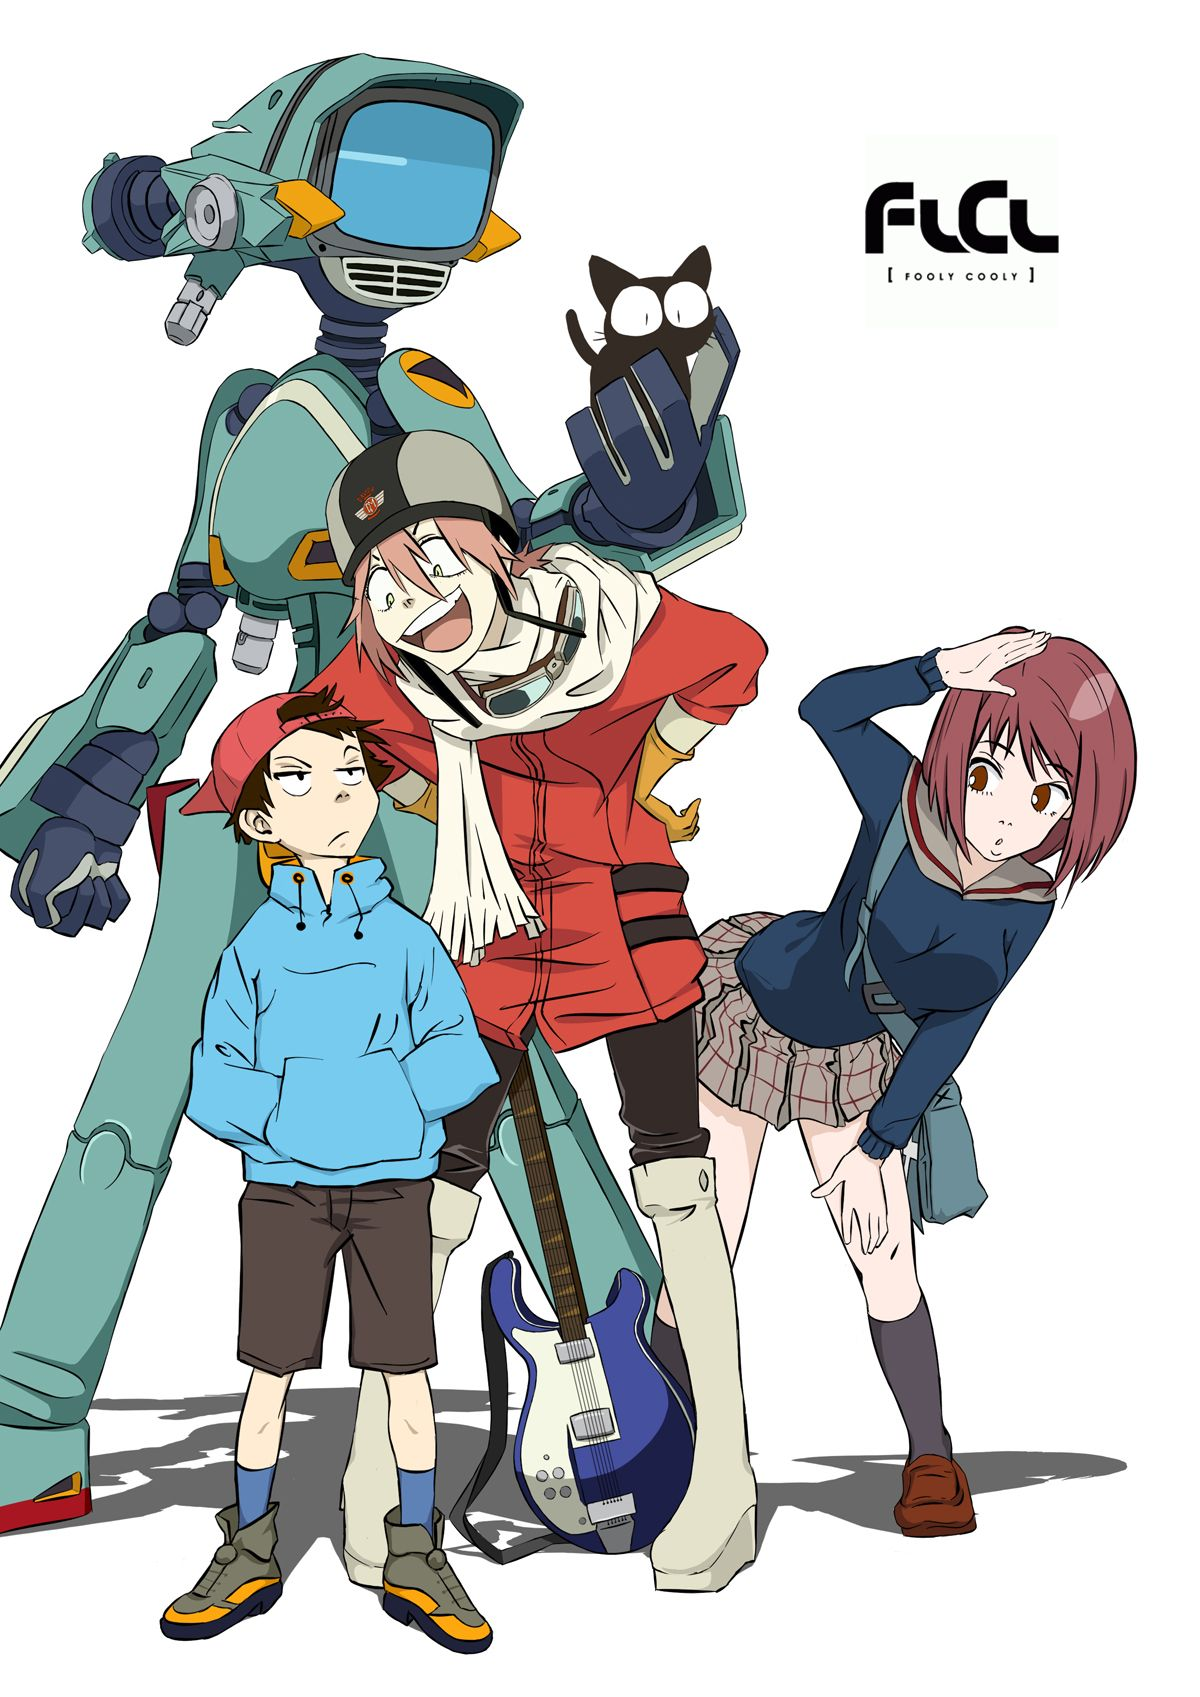 Fooly cooly i just finished this anime and i got to say i fairly enjoyed it although the show has a very confusing plot there are multiple lessons